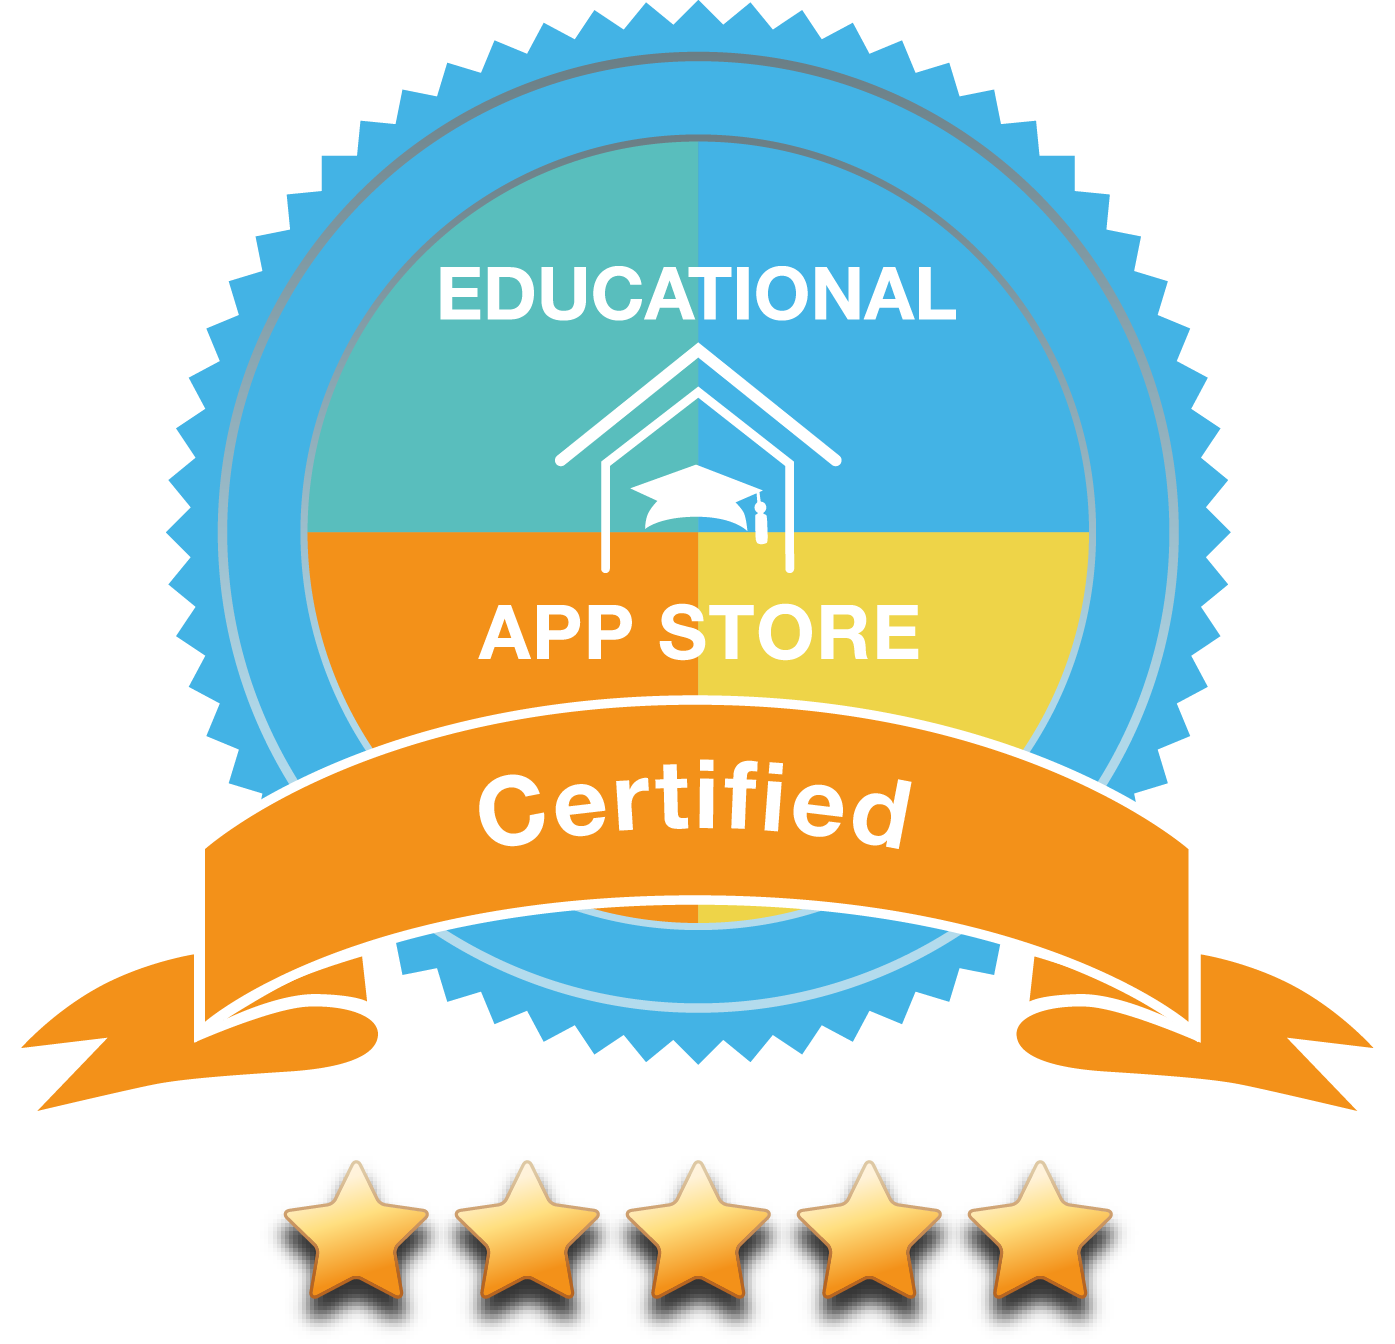 What Makes an App Truly Educational? Four Things to Check Out